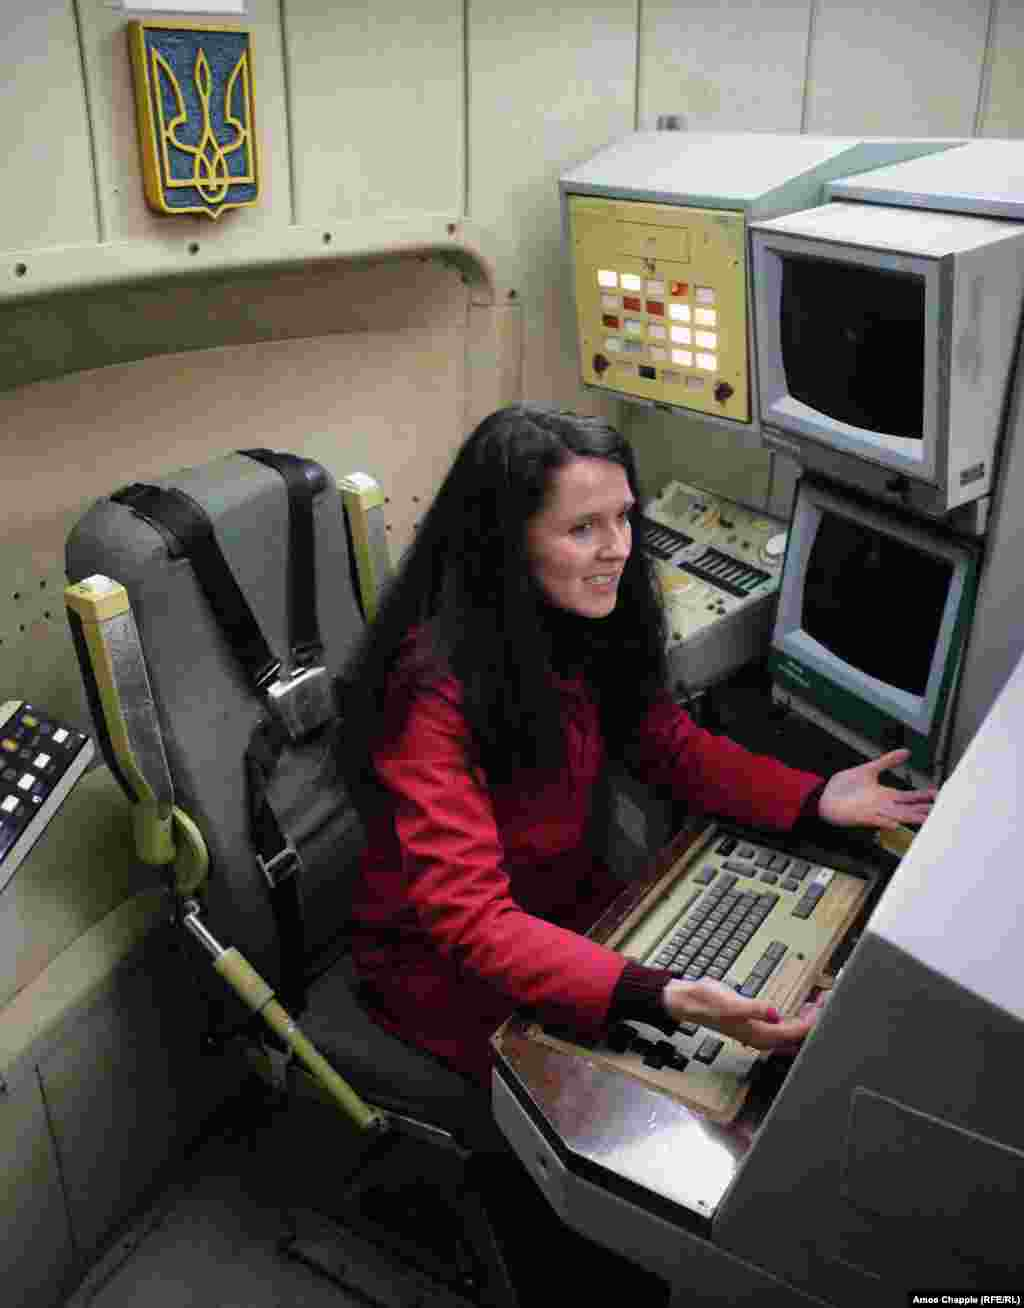 Local tour guide Olena Smerychevska (who works professionally as Elena Smerichevskaya) sitting at one of the two desks with access to the launch buttons.